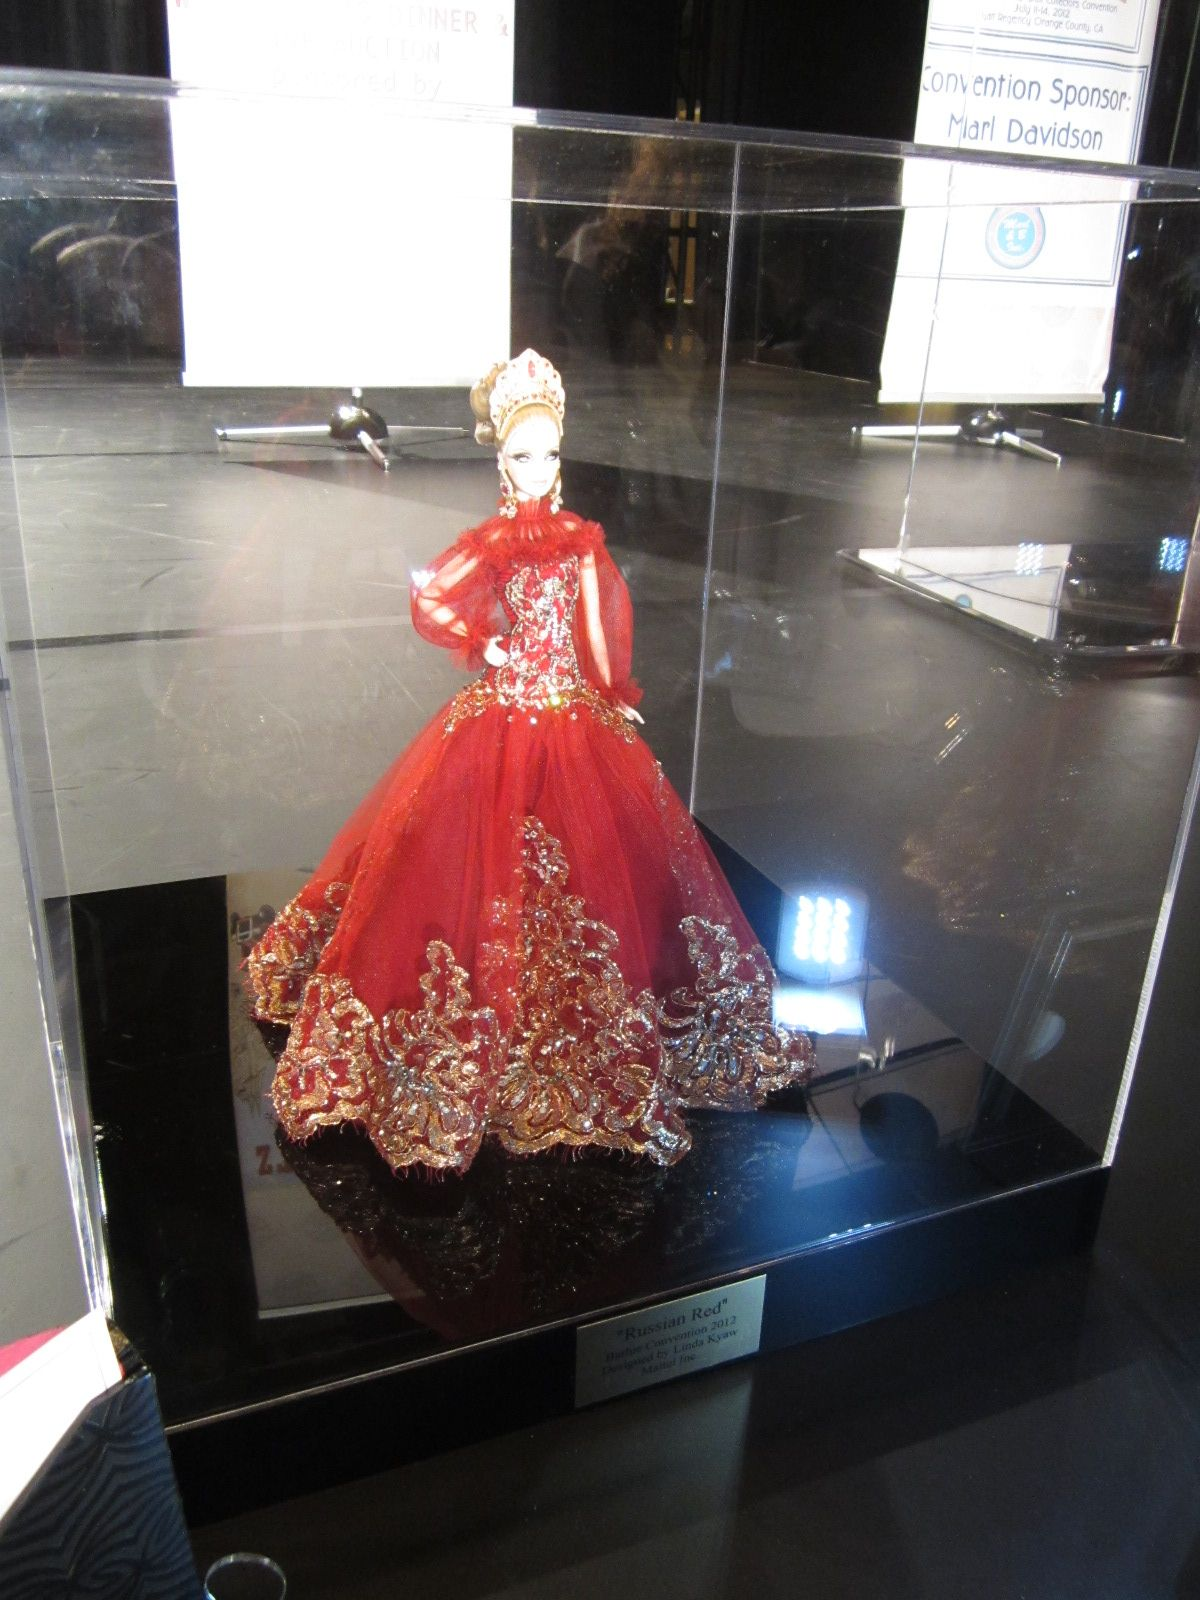 Mattel Designer Doll for charity auction at convention - stunning!